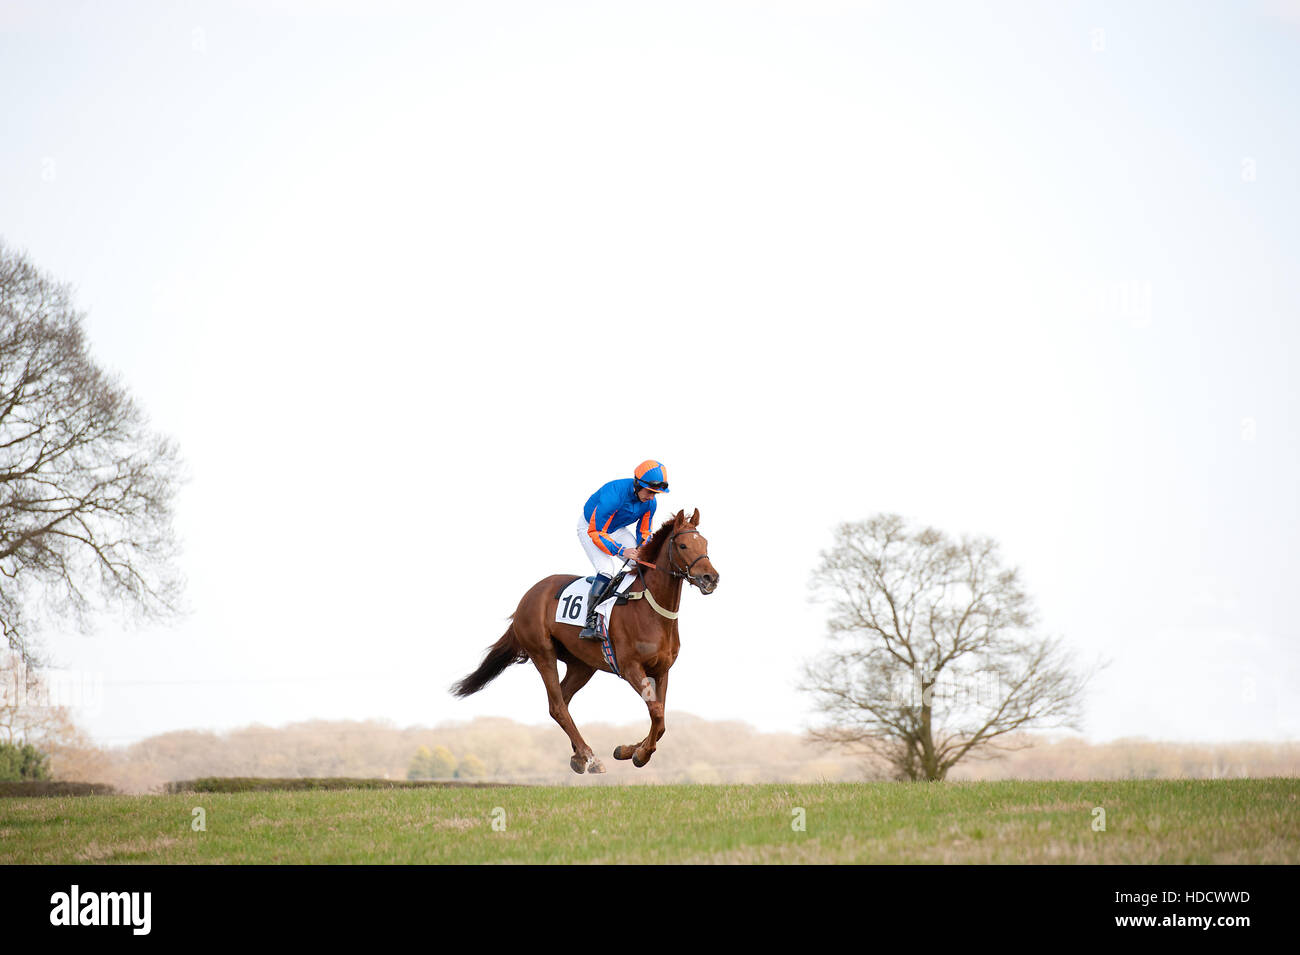 horse in the air - Stock Image